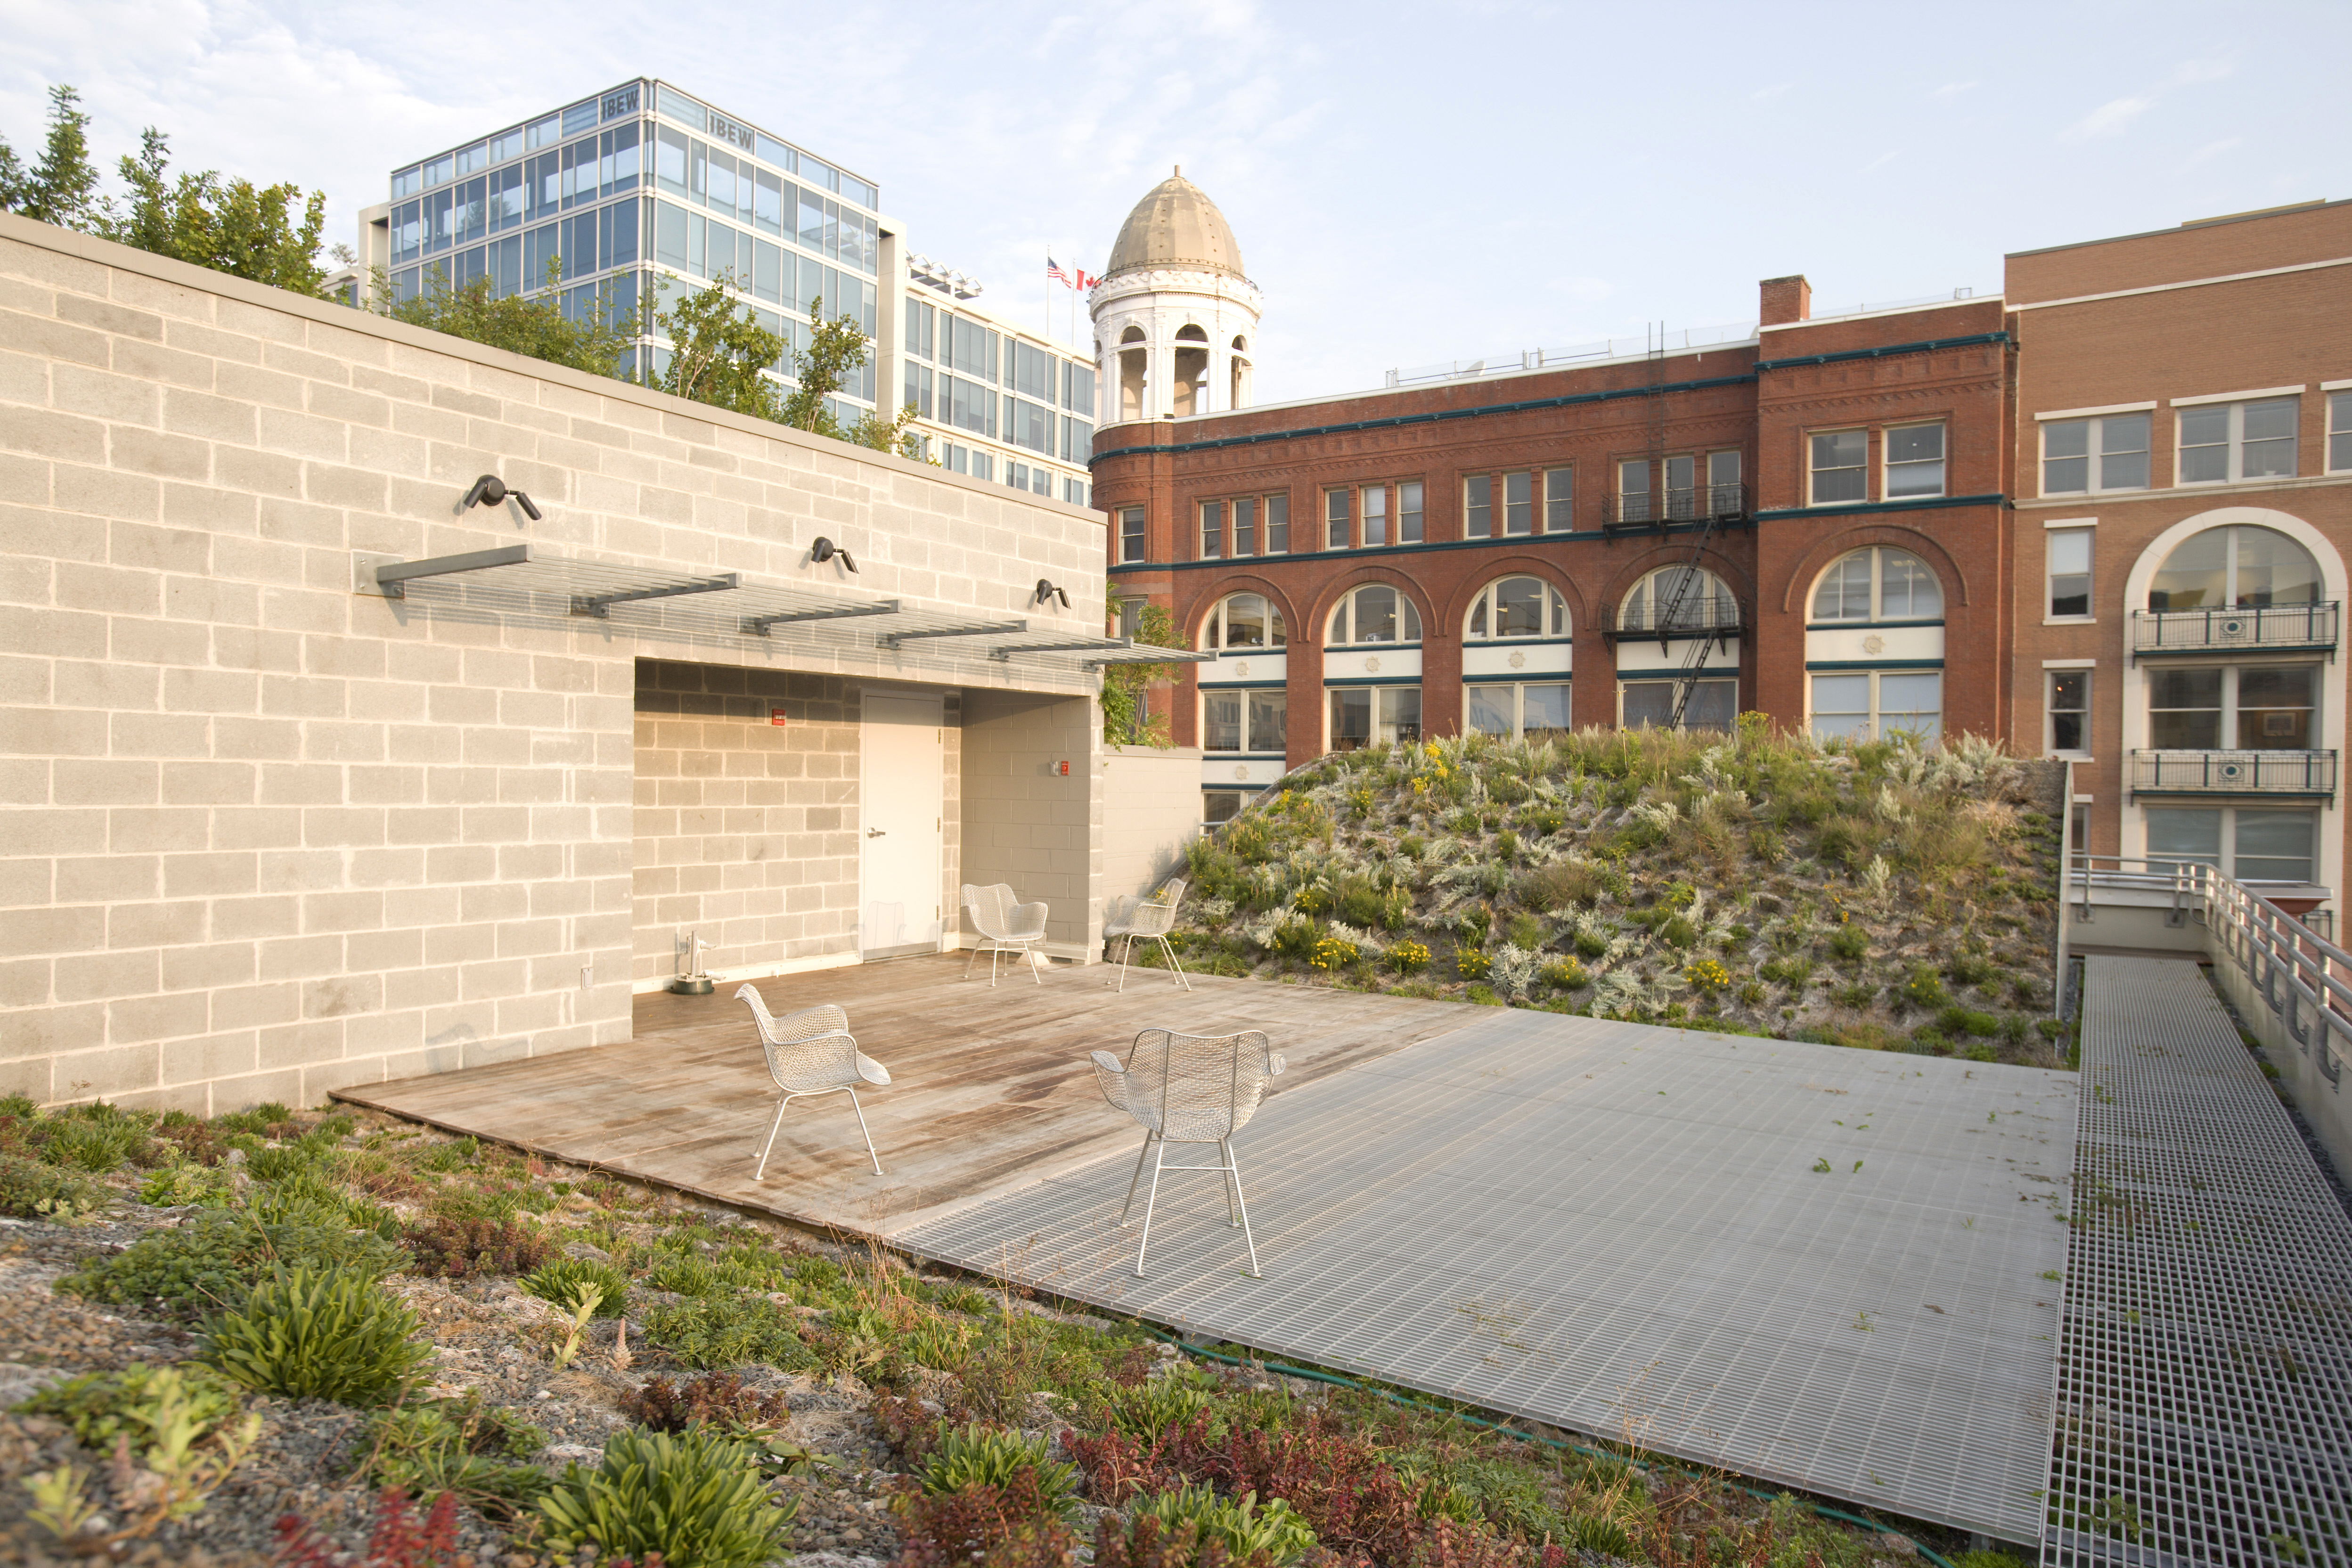 American Society Of Landscape Architects Headquarters